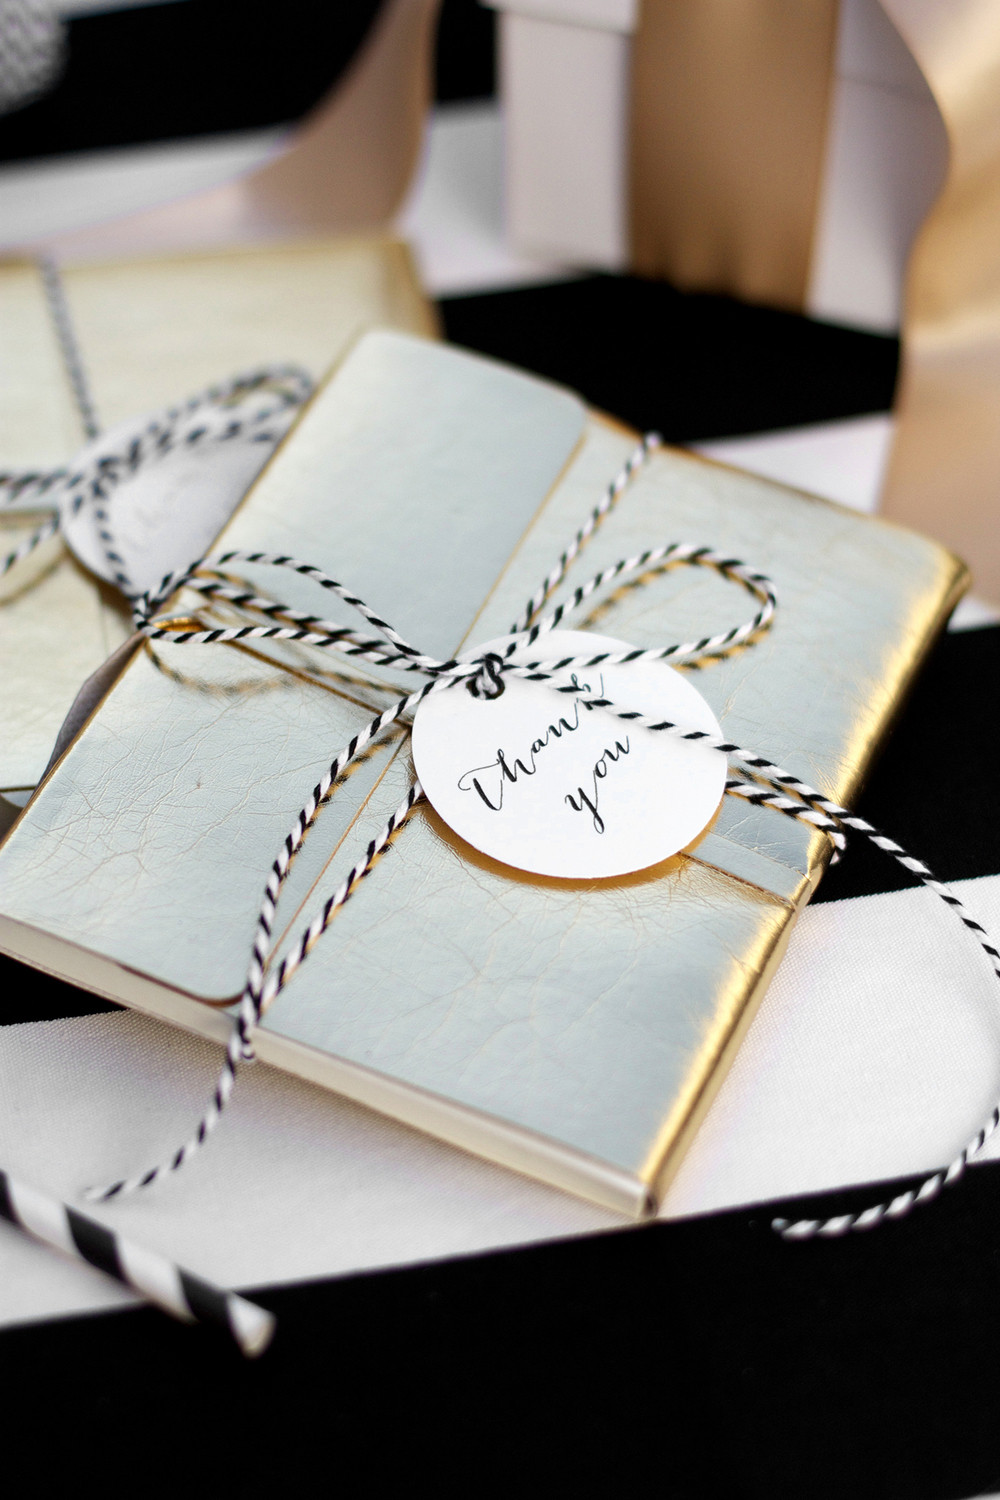 Party Favor Ideas For Graduation Party  Sparkling Senior Graduation Party with Shutterfly — Kristi